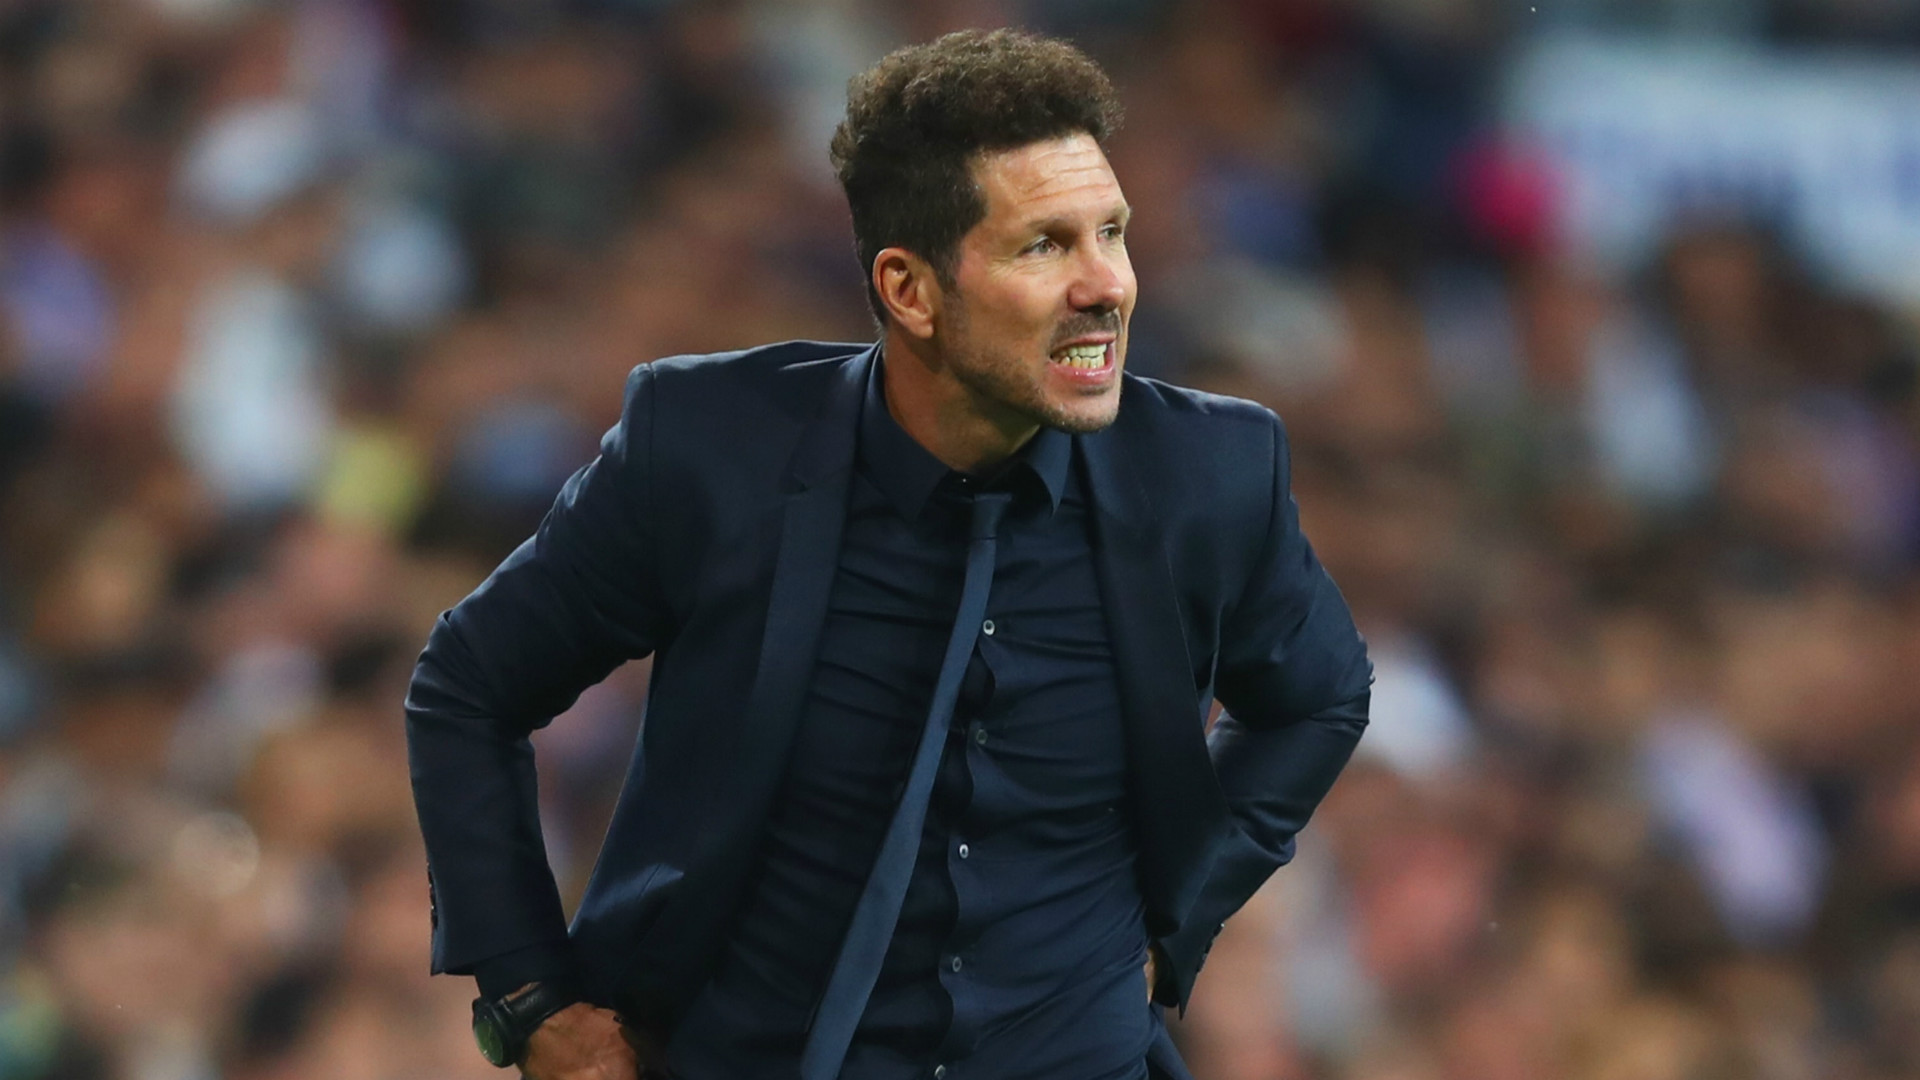 Diego Simeone confirms he will manage Atletico Madrid next season